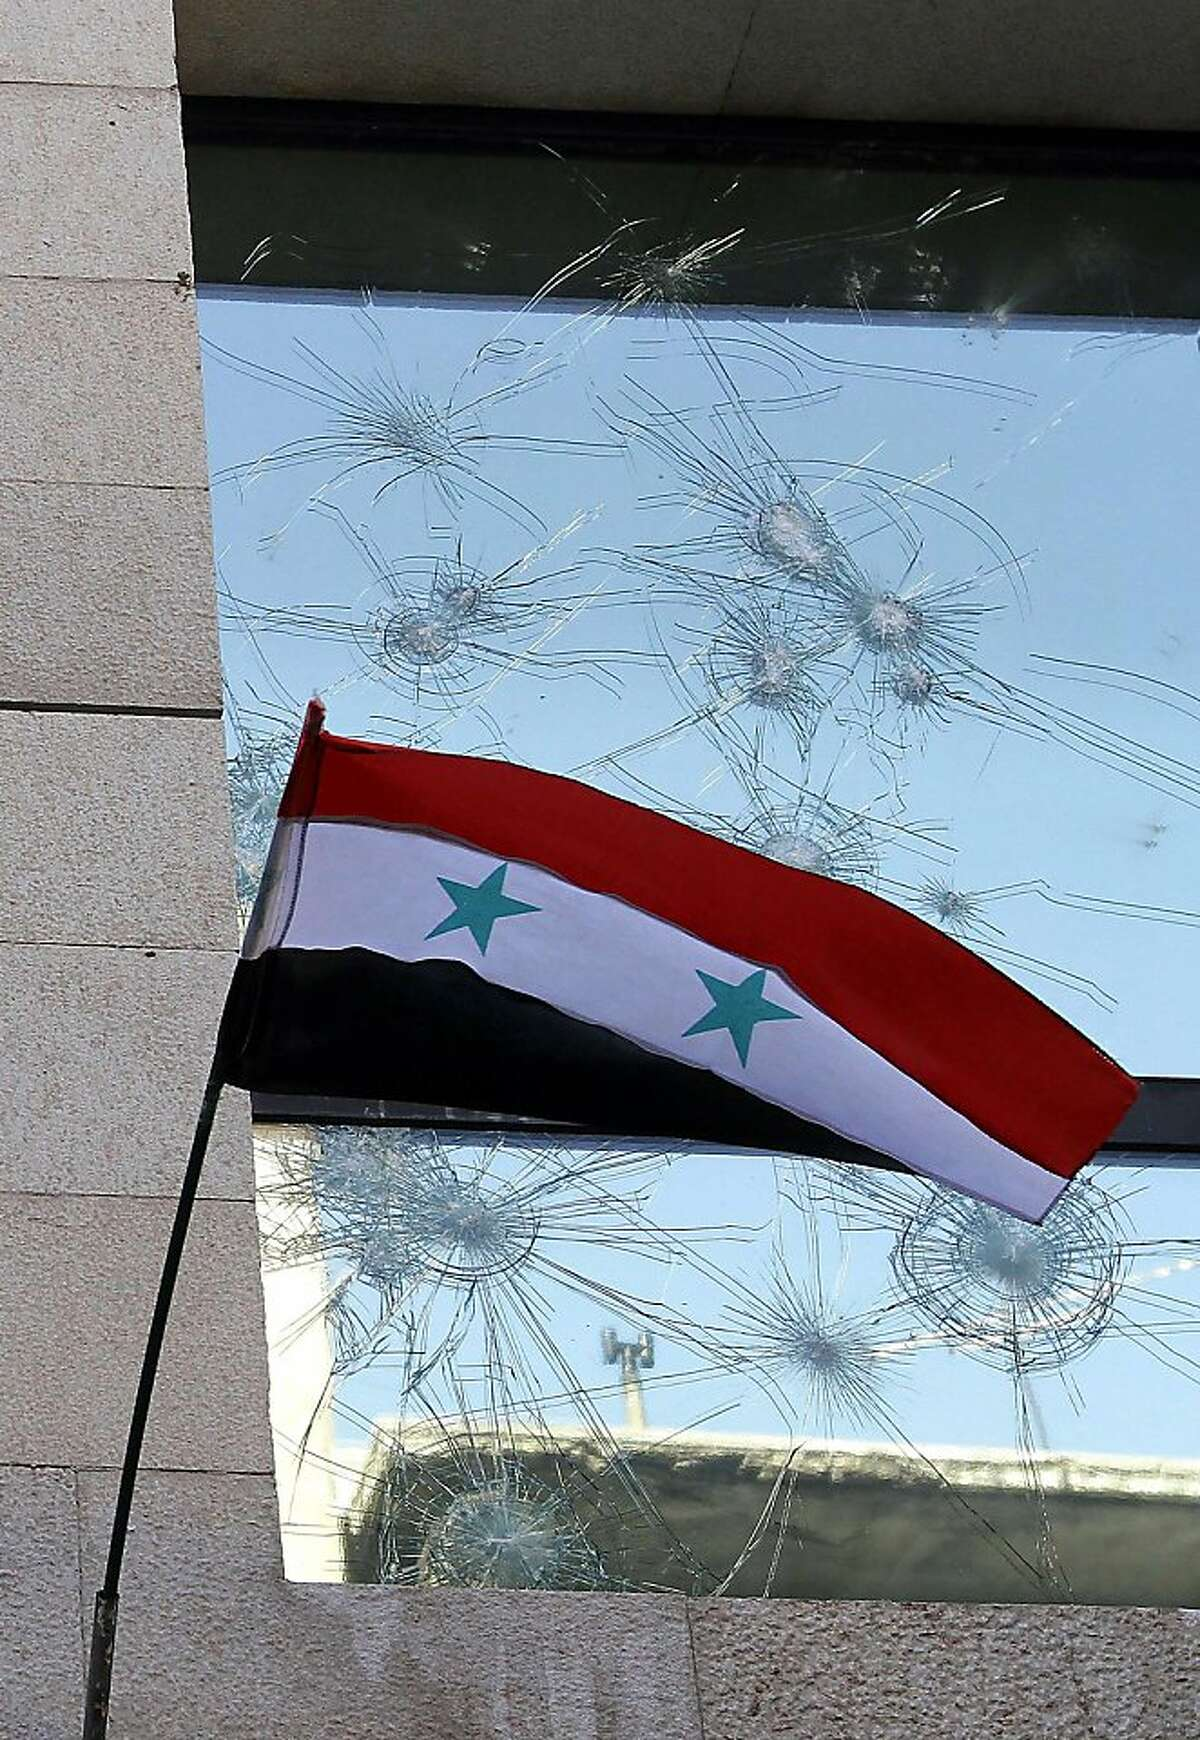 The Syrian flag flutters outside the damaged windows of the French Embassy following a gathering of pro-government protesters in Damascus on July 11, 2011. Two-pronged demonstrations outside this and the American embassy took place in the Syrian capital days after both the French and US ambassadors visited the flashpoint city Hama, north of Damascus, a hub for protests against President Assad's regime.